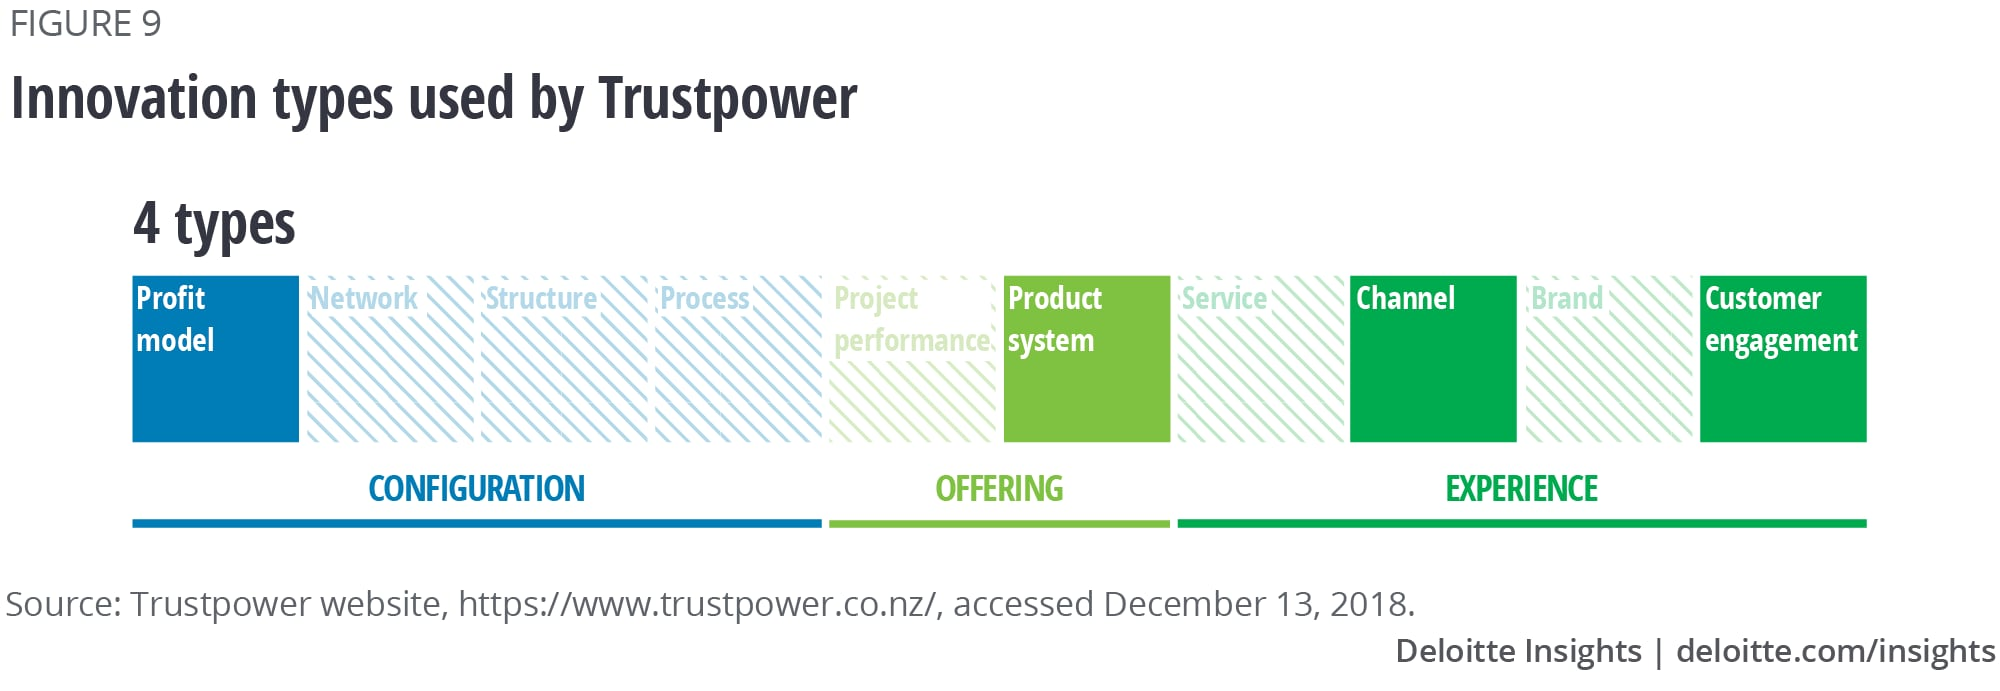 Innovation types used by Trustpower